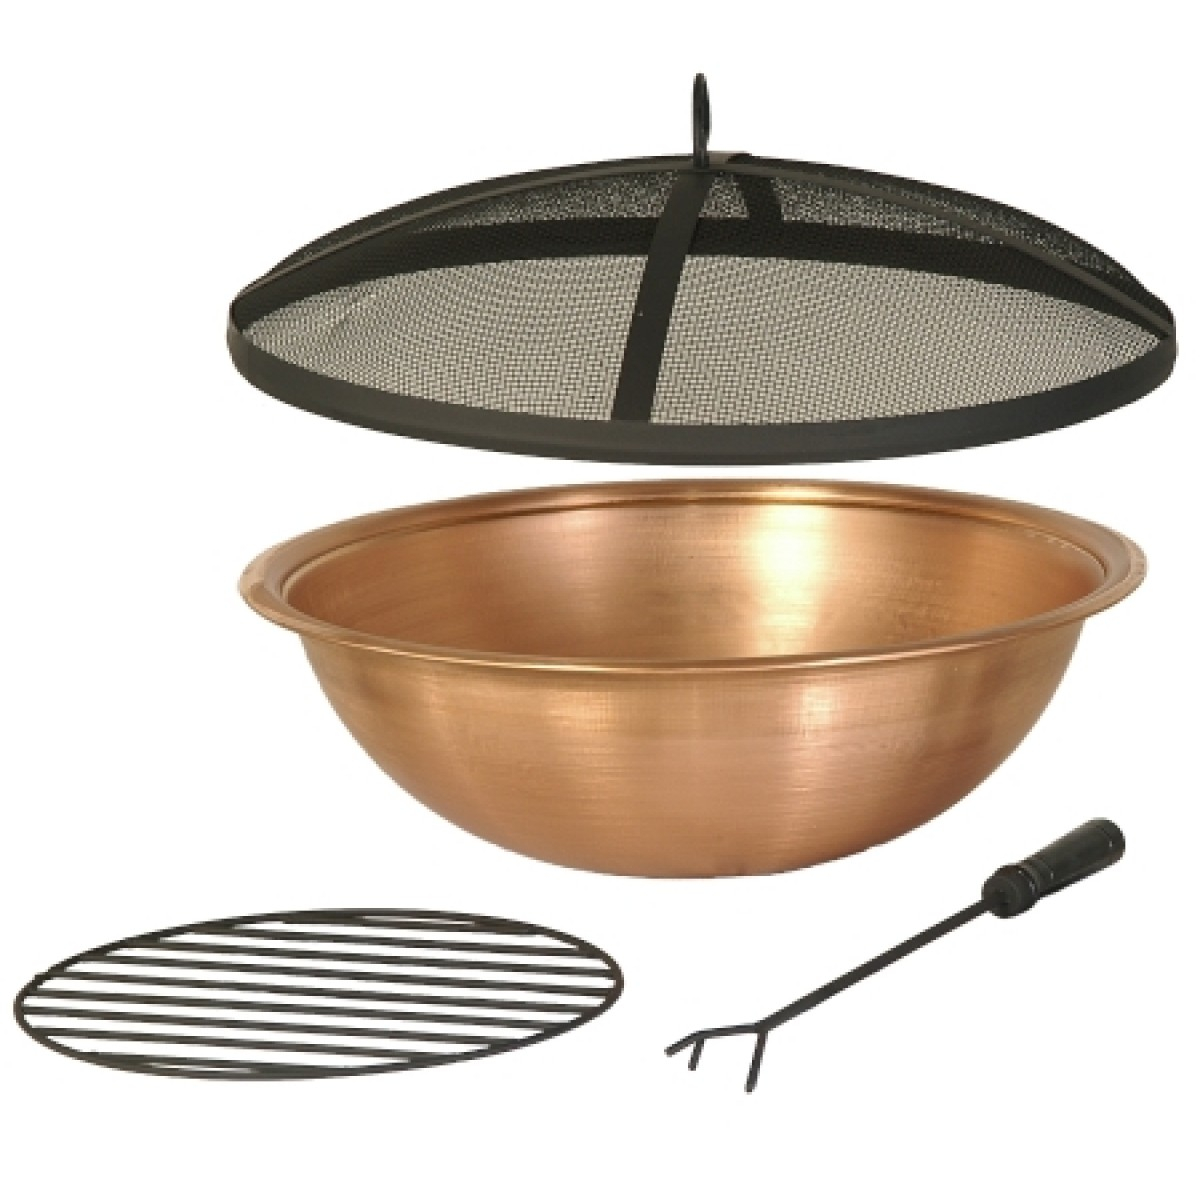 Hanamint Fire Pit Bowl Accessories Fire Heat Sunnyland Outdoor throughout proportions 1200 X 1200